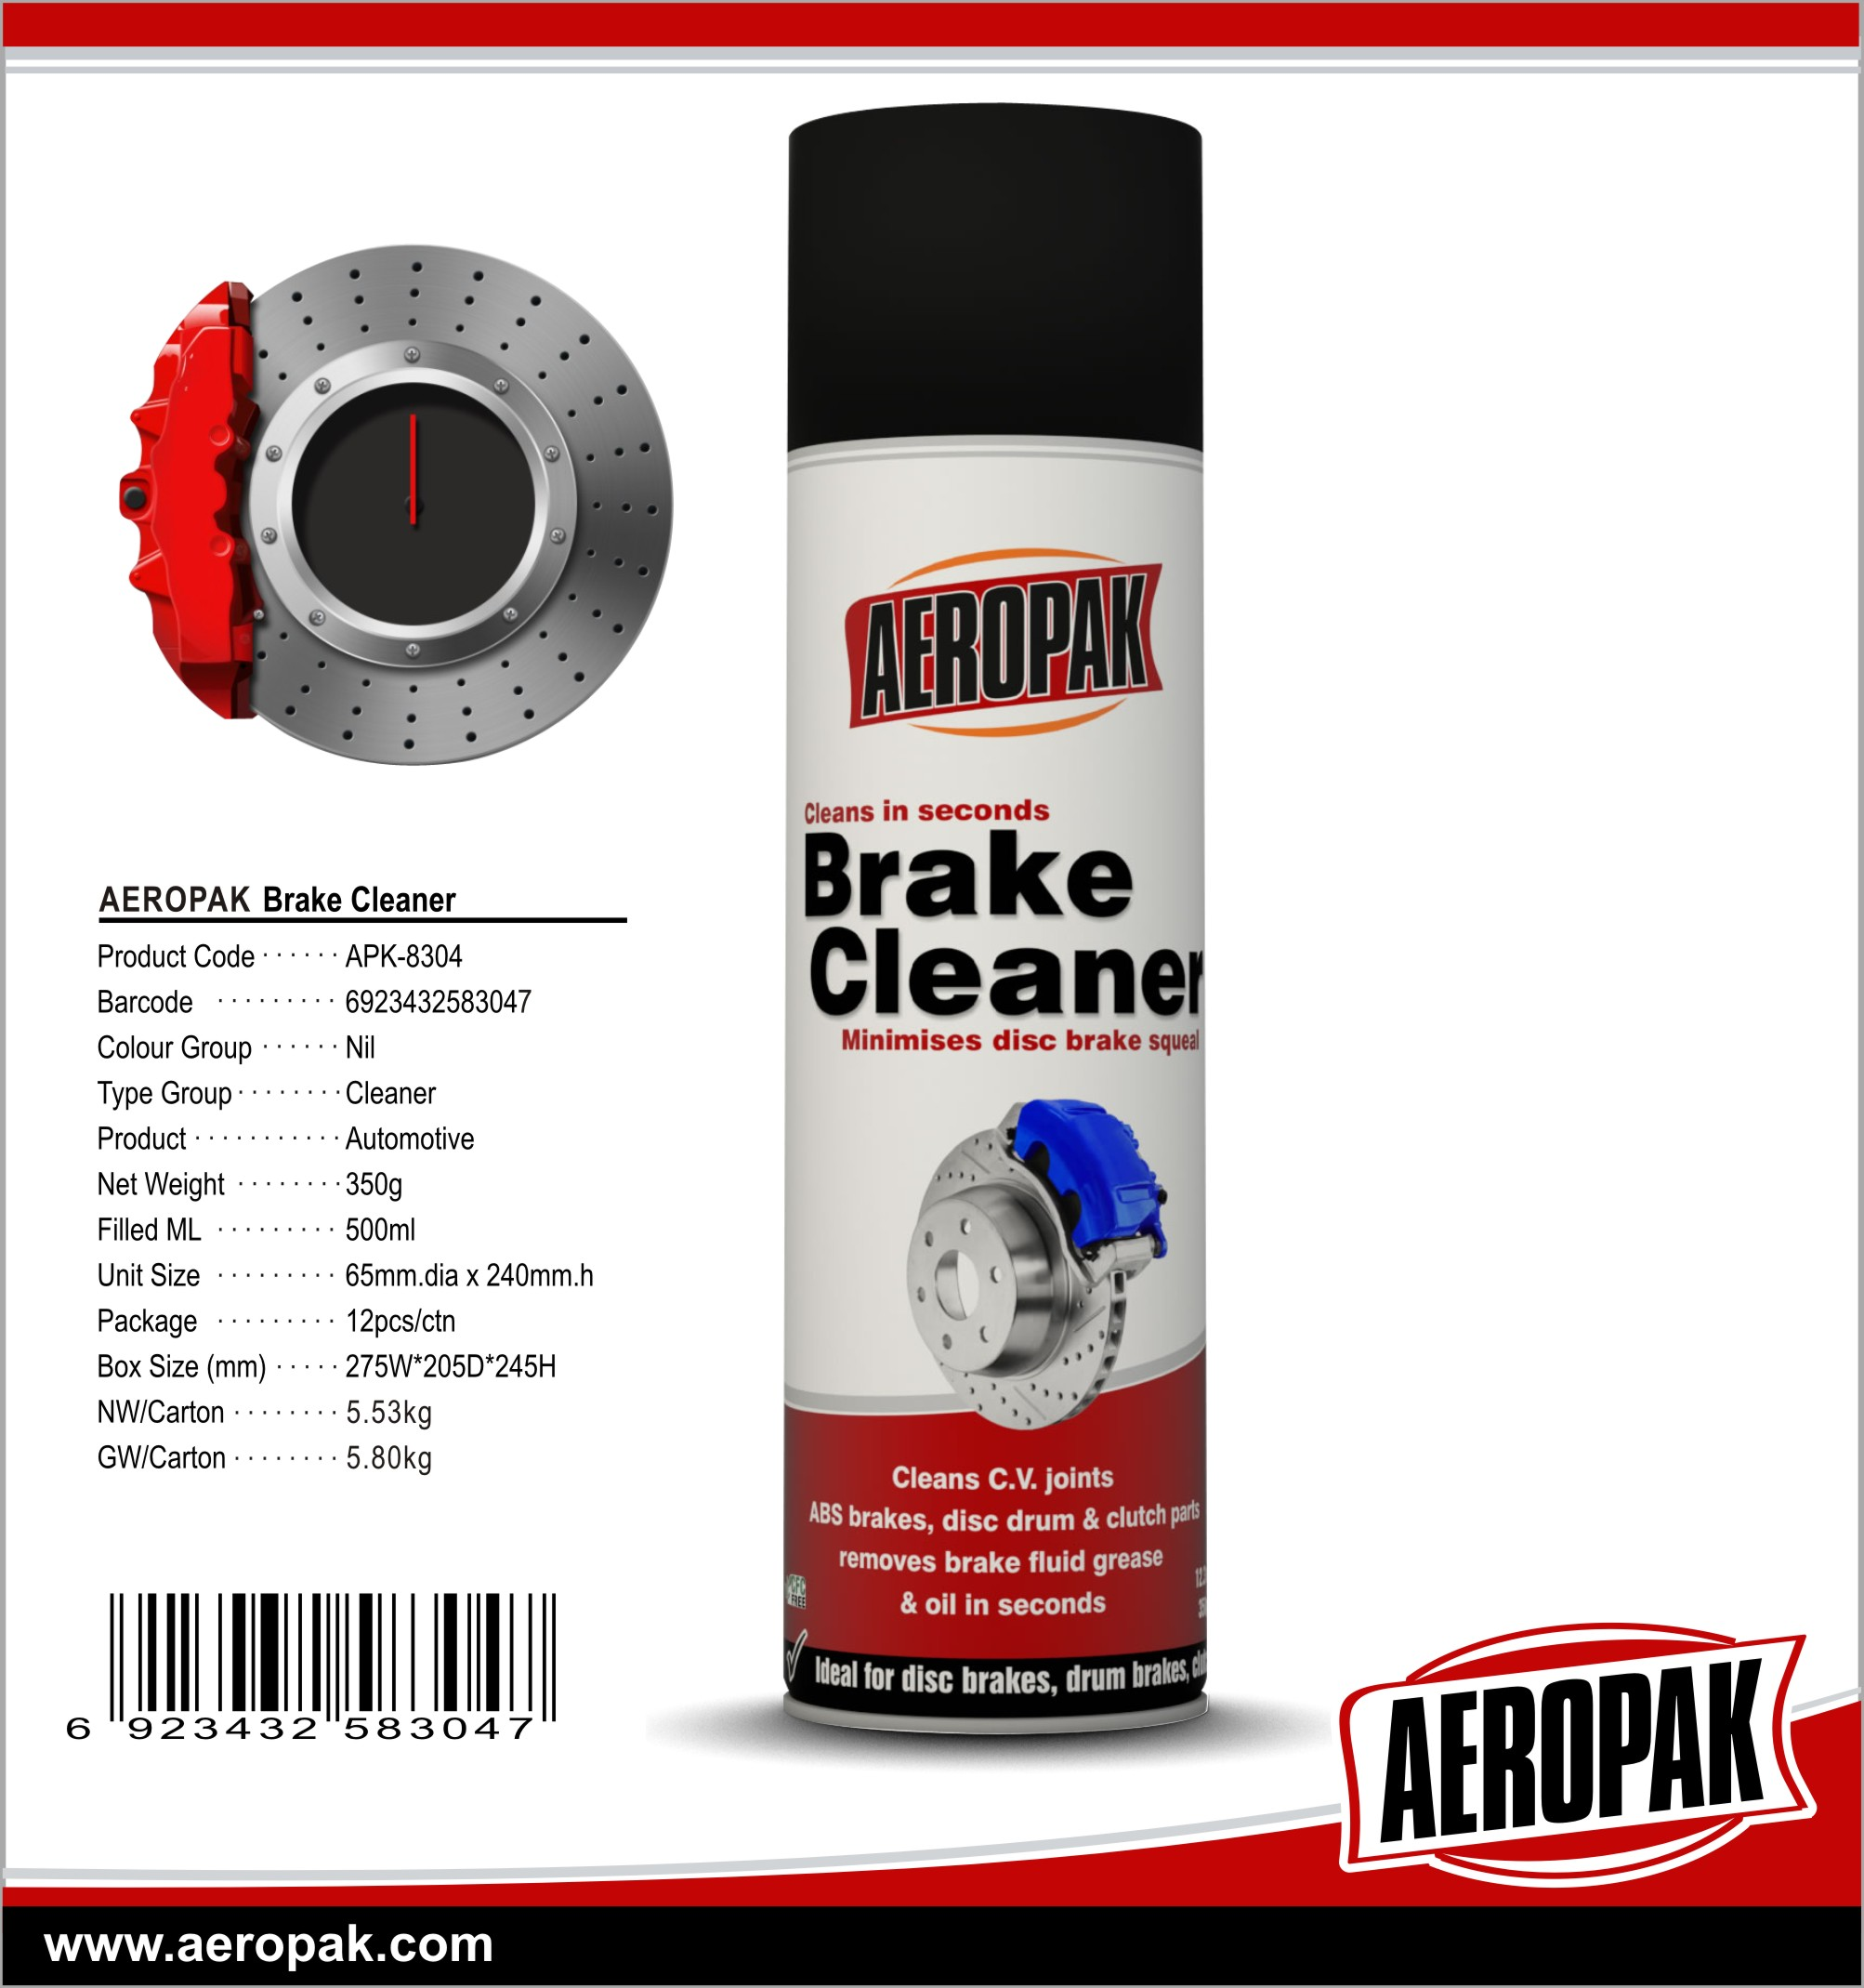 AEROPAK High Efficiency Aerosol Brake Cleaner for Car Cleaning & Washing